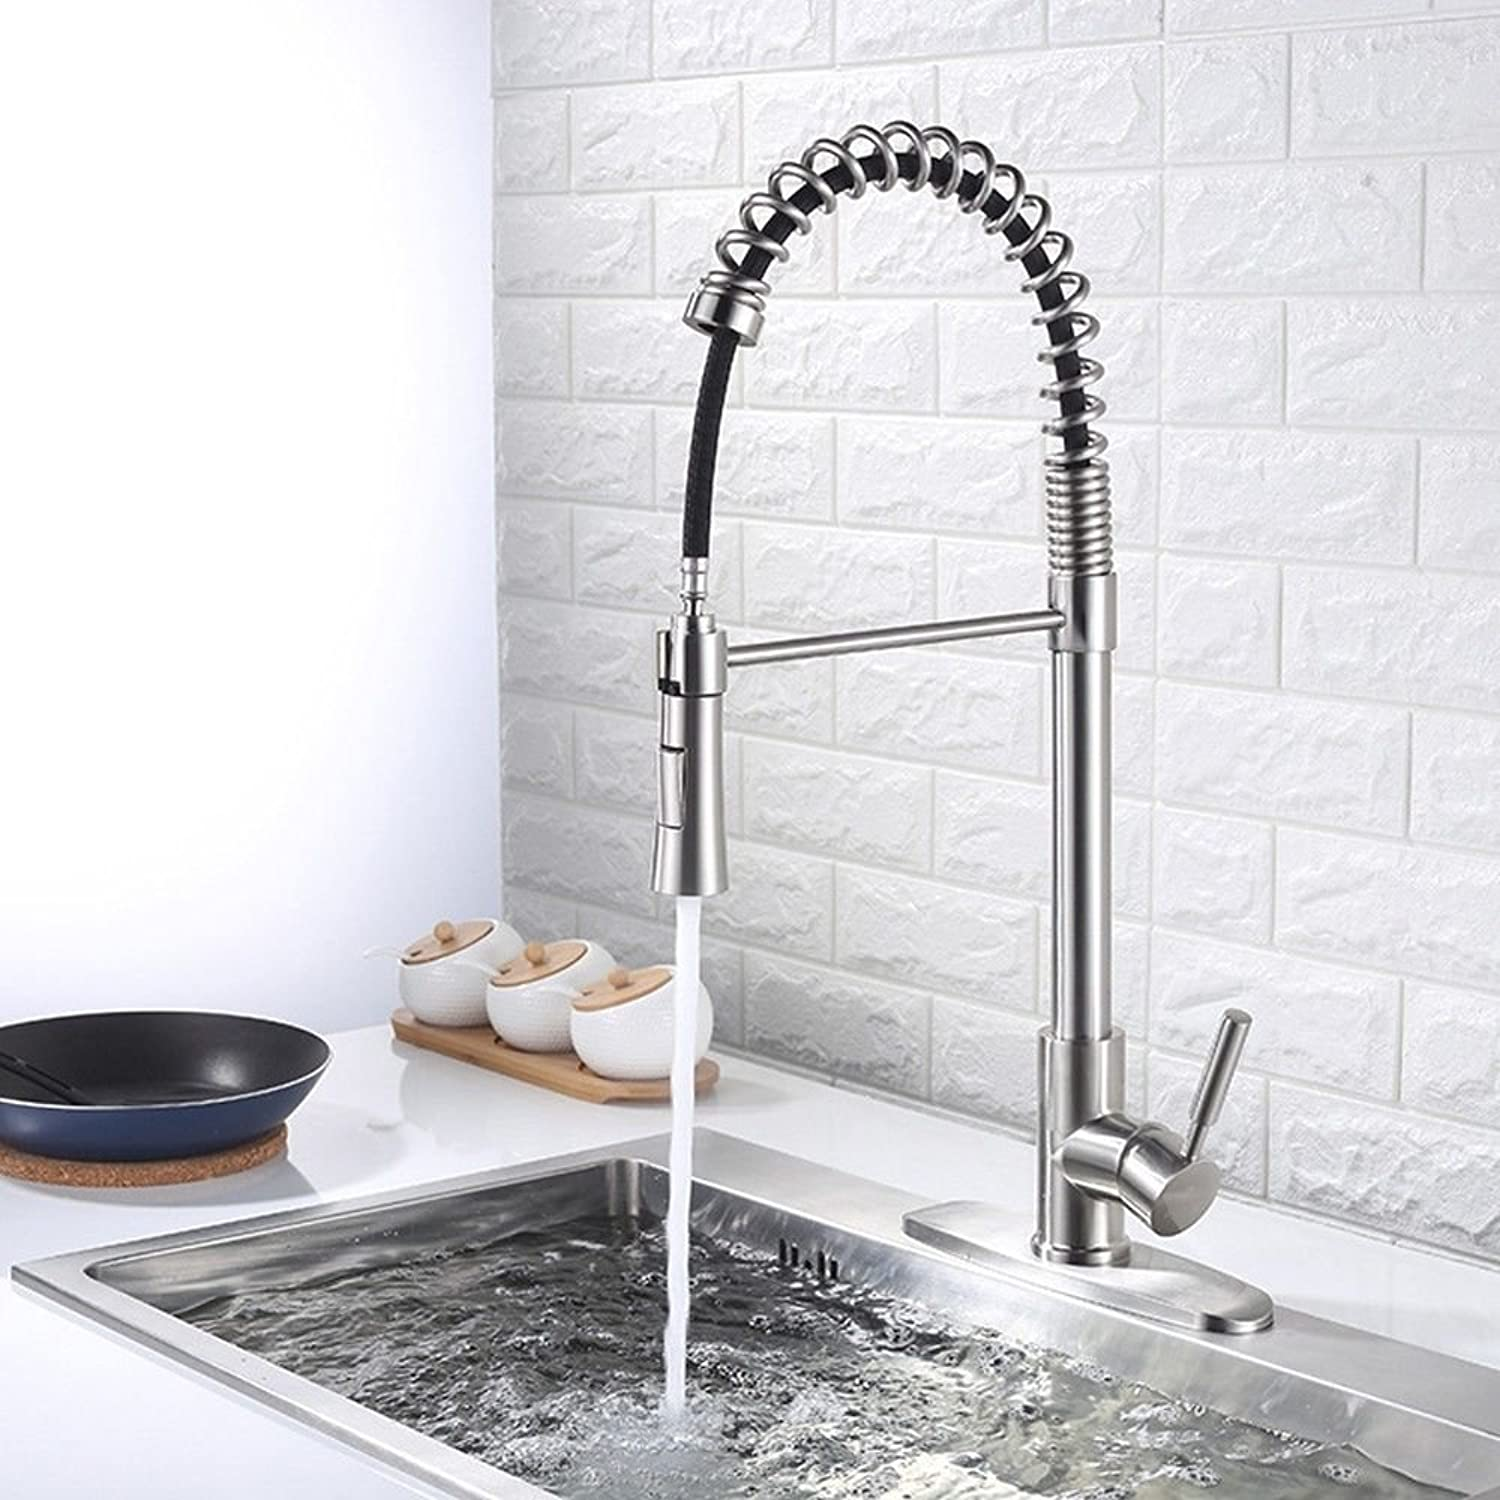 SADASD Modern Bathroom Basin Faucet Copper Single Joint Pull Washbasin Sink Taps Ceramic Valve Single Hole Single Handle Hot and Cold Mixer Tap With G1 2 Hose